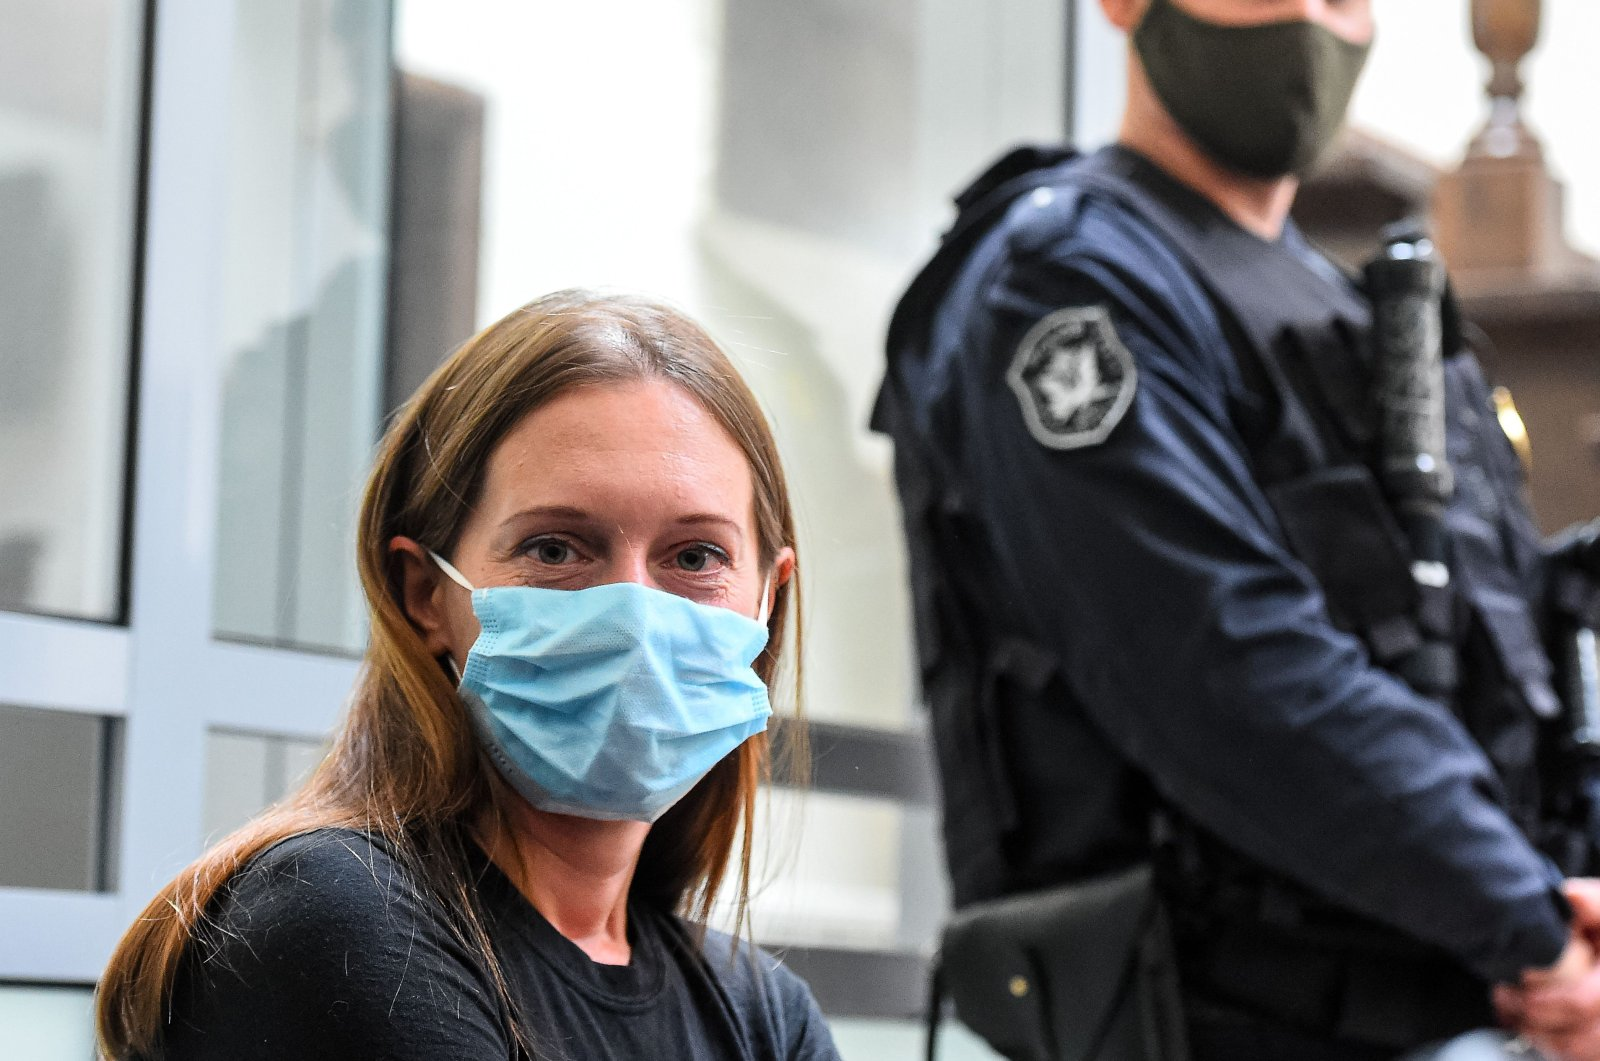 Russian journalist Svetlana Prokopyeva who was charged with publicly justifying terrorism attends a court hearing in Pskov on July 6, 2020. (AFP Photo)